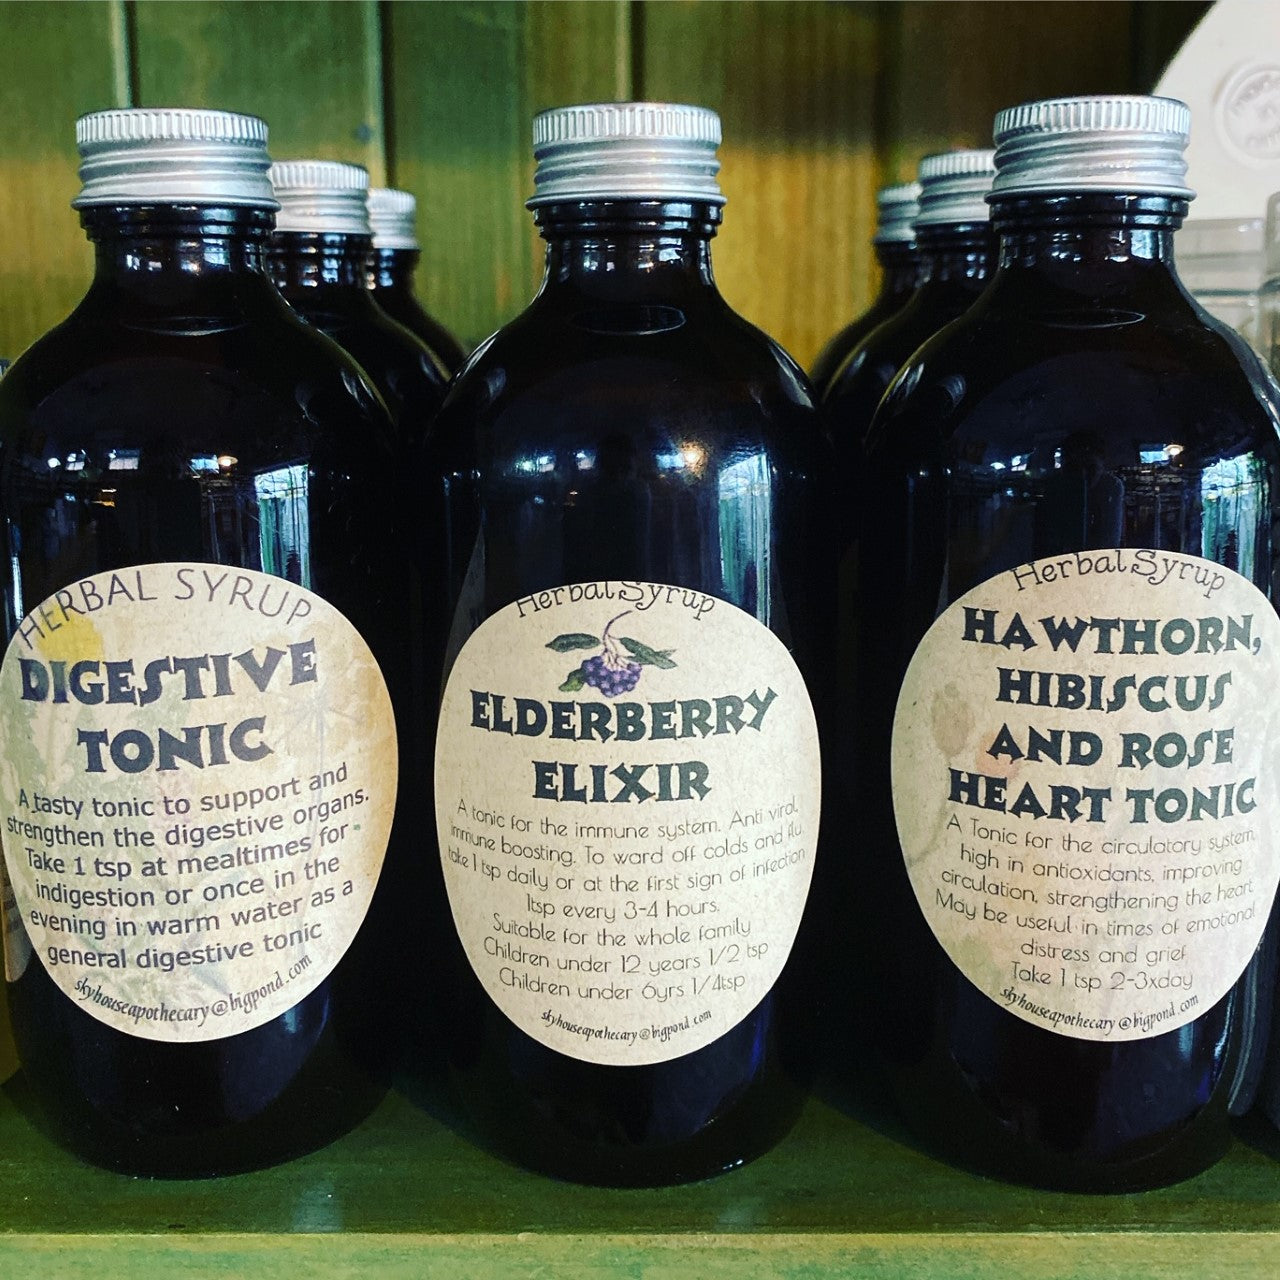 Elderberry Elixir - Skyhouse Apothecary